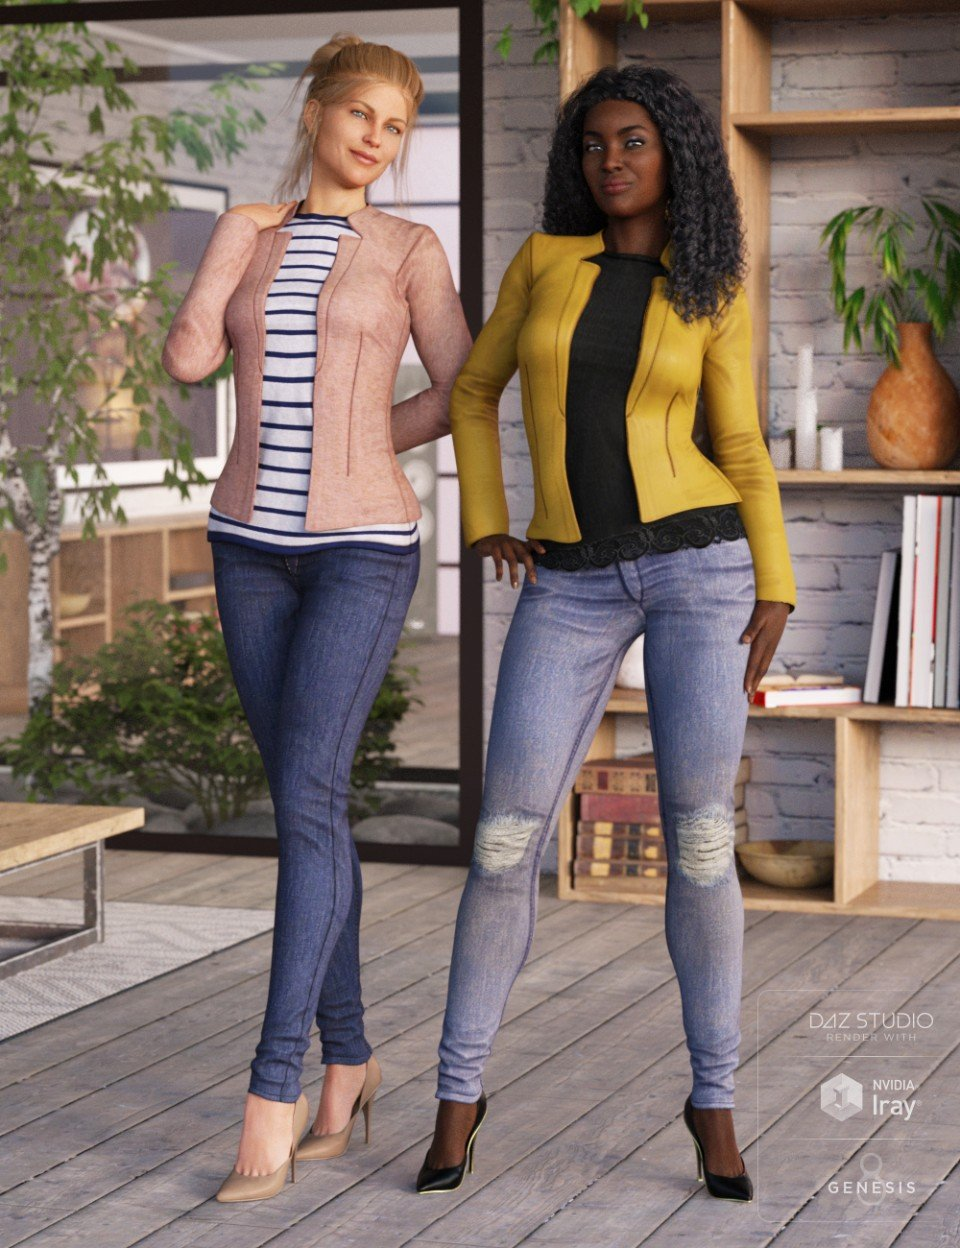 Blazer and Skinny Jeans Outfit Textures_DAZ3D下载站